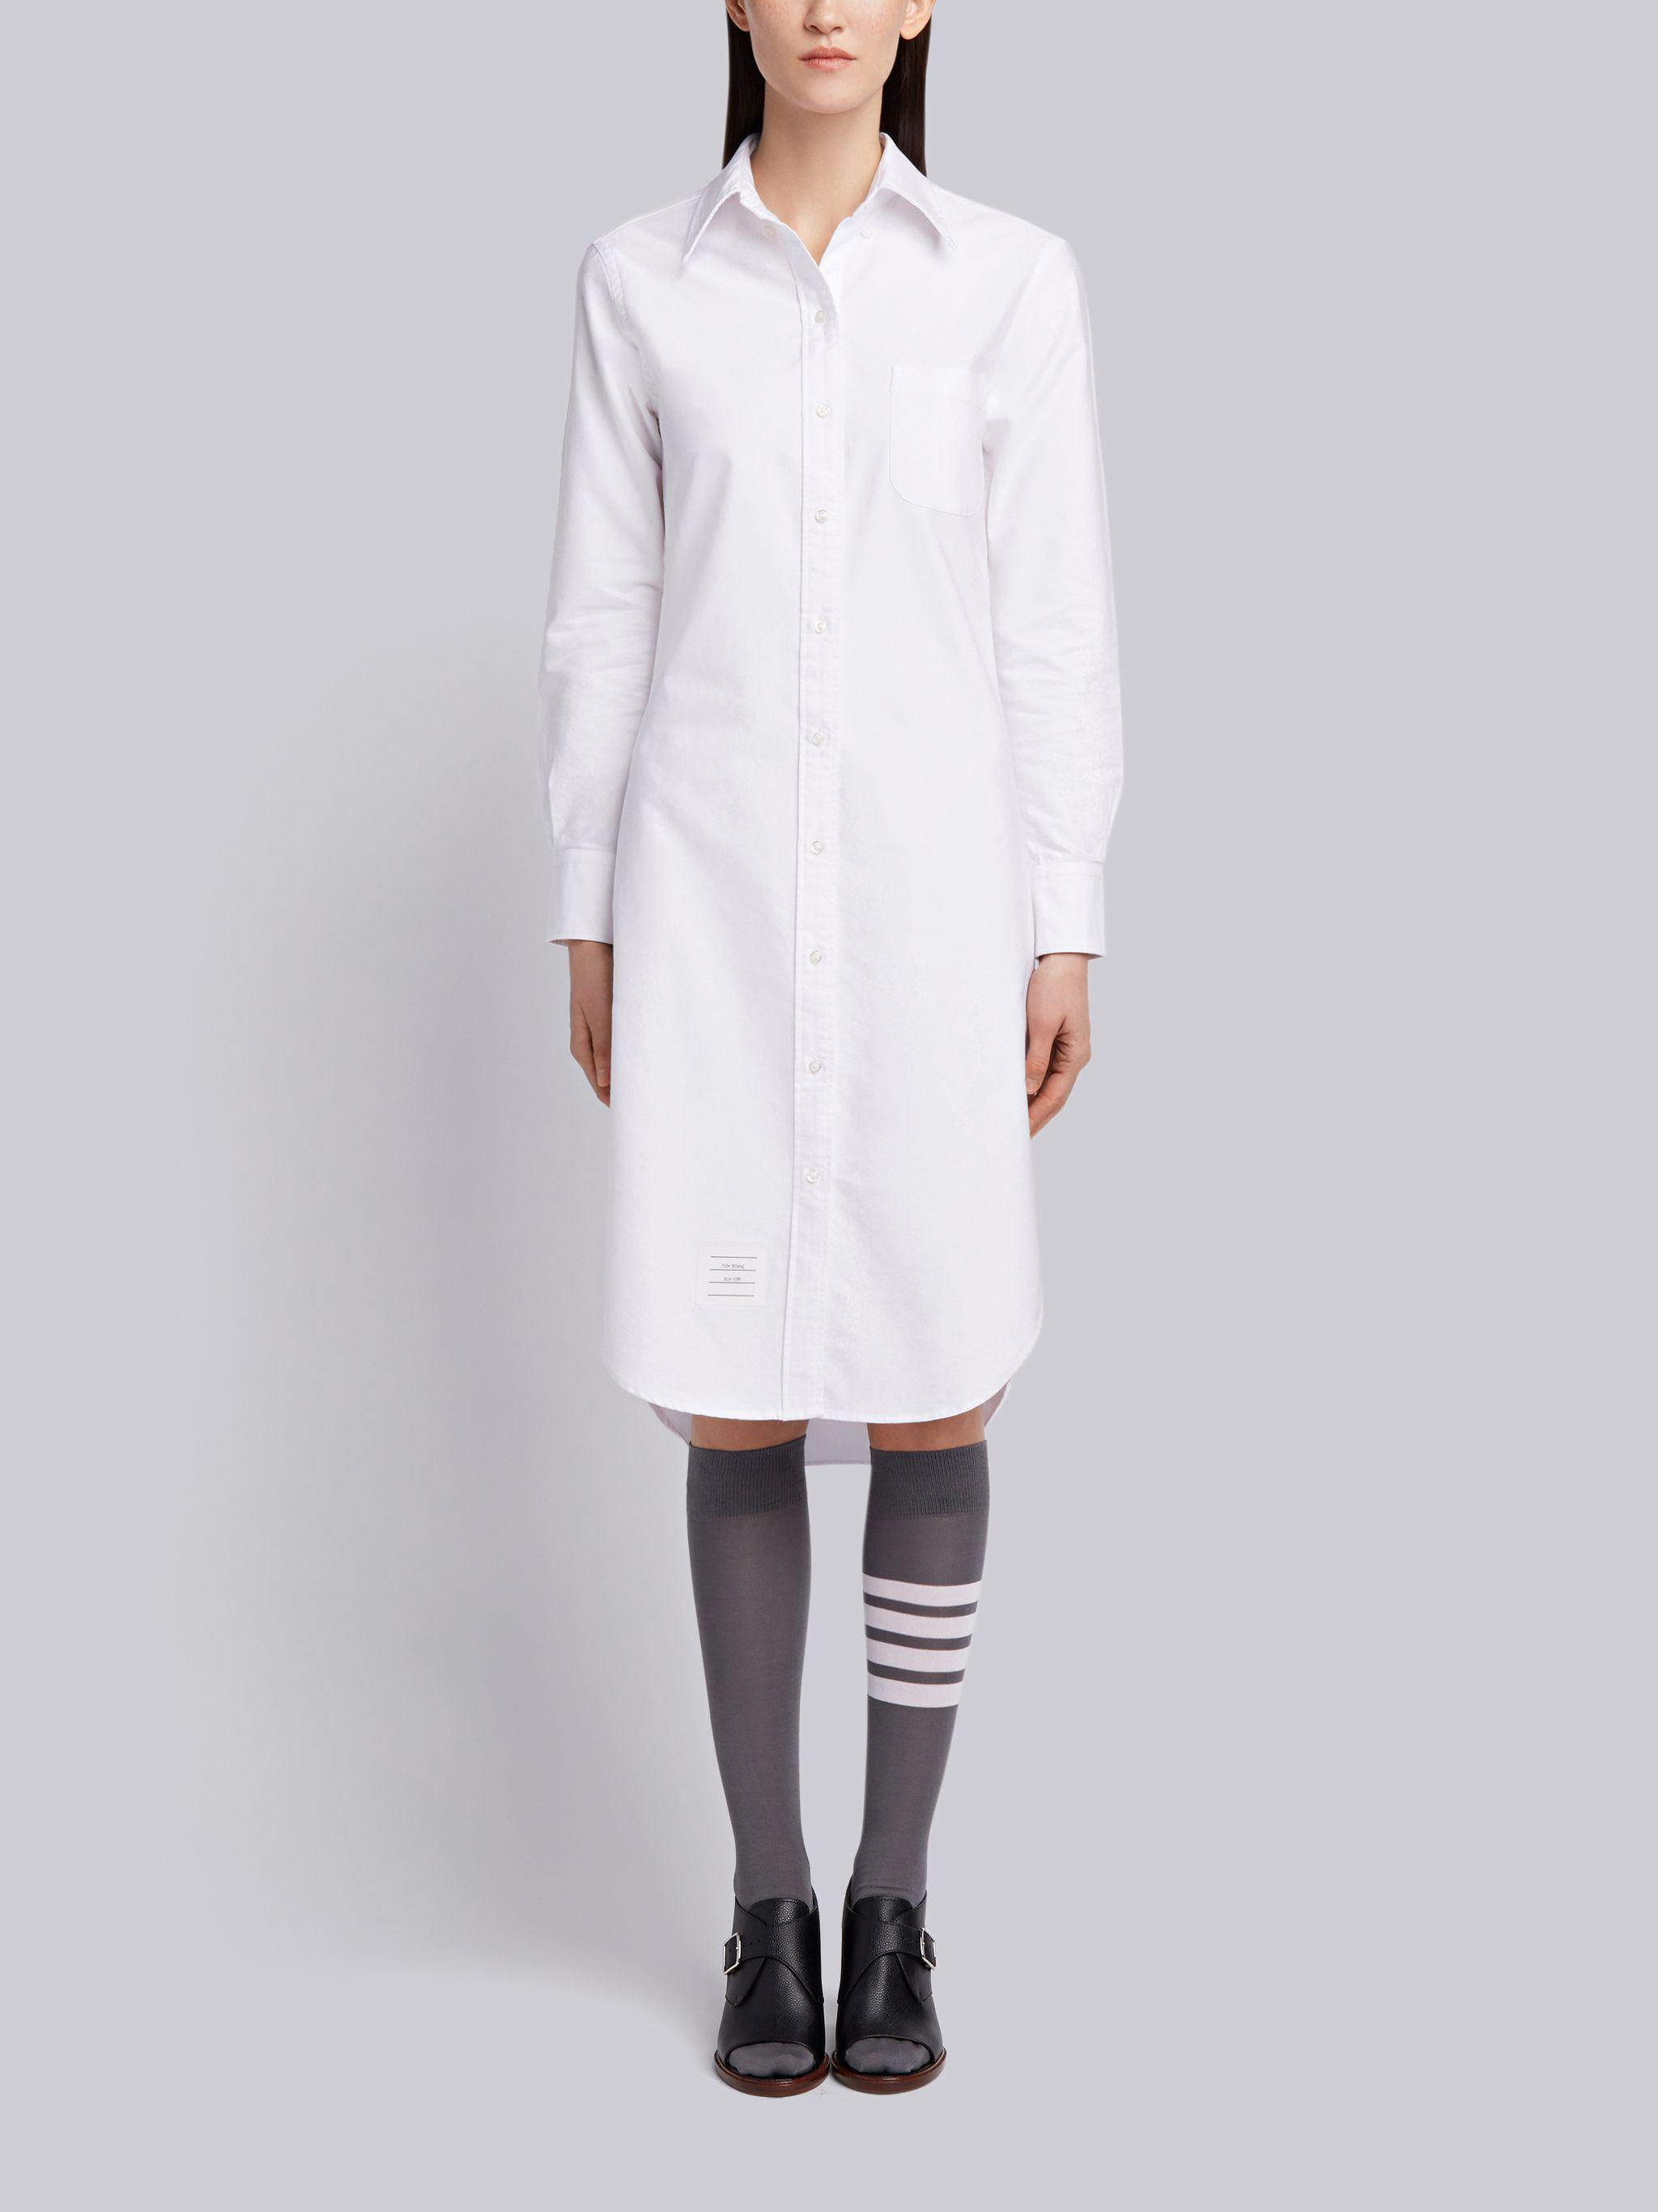 White Classic Oxford Long-sleeve Button Down Knee Length Shirtdress